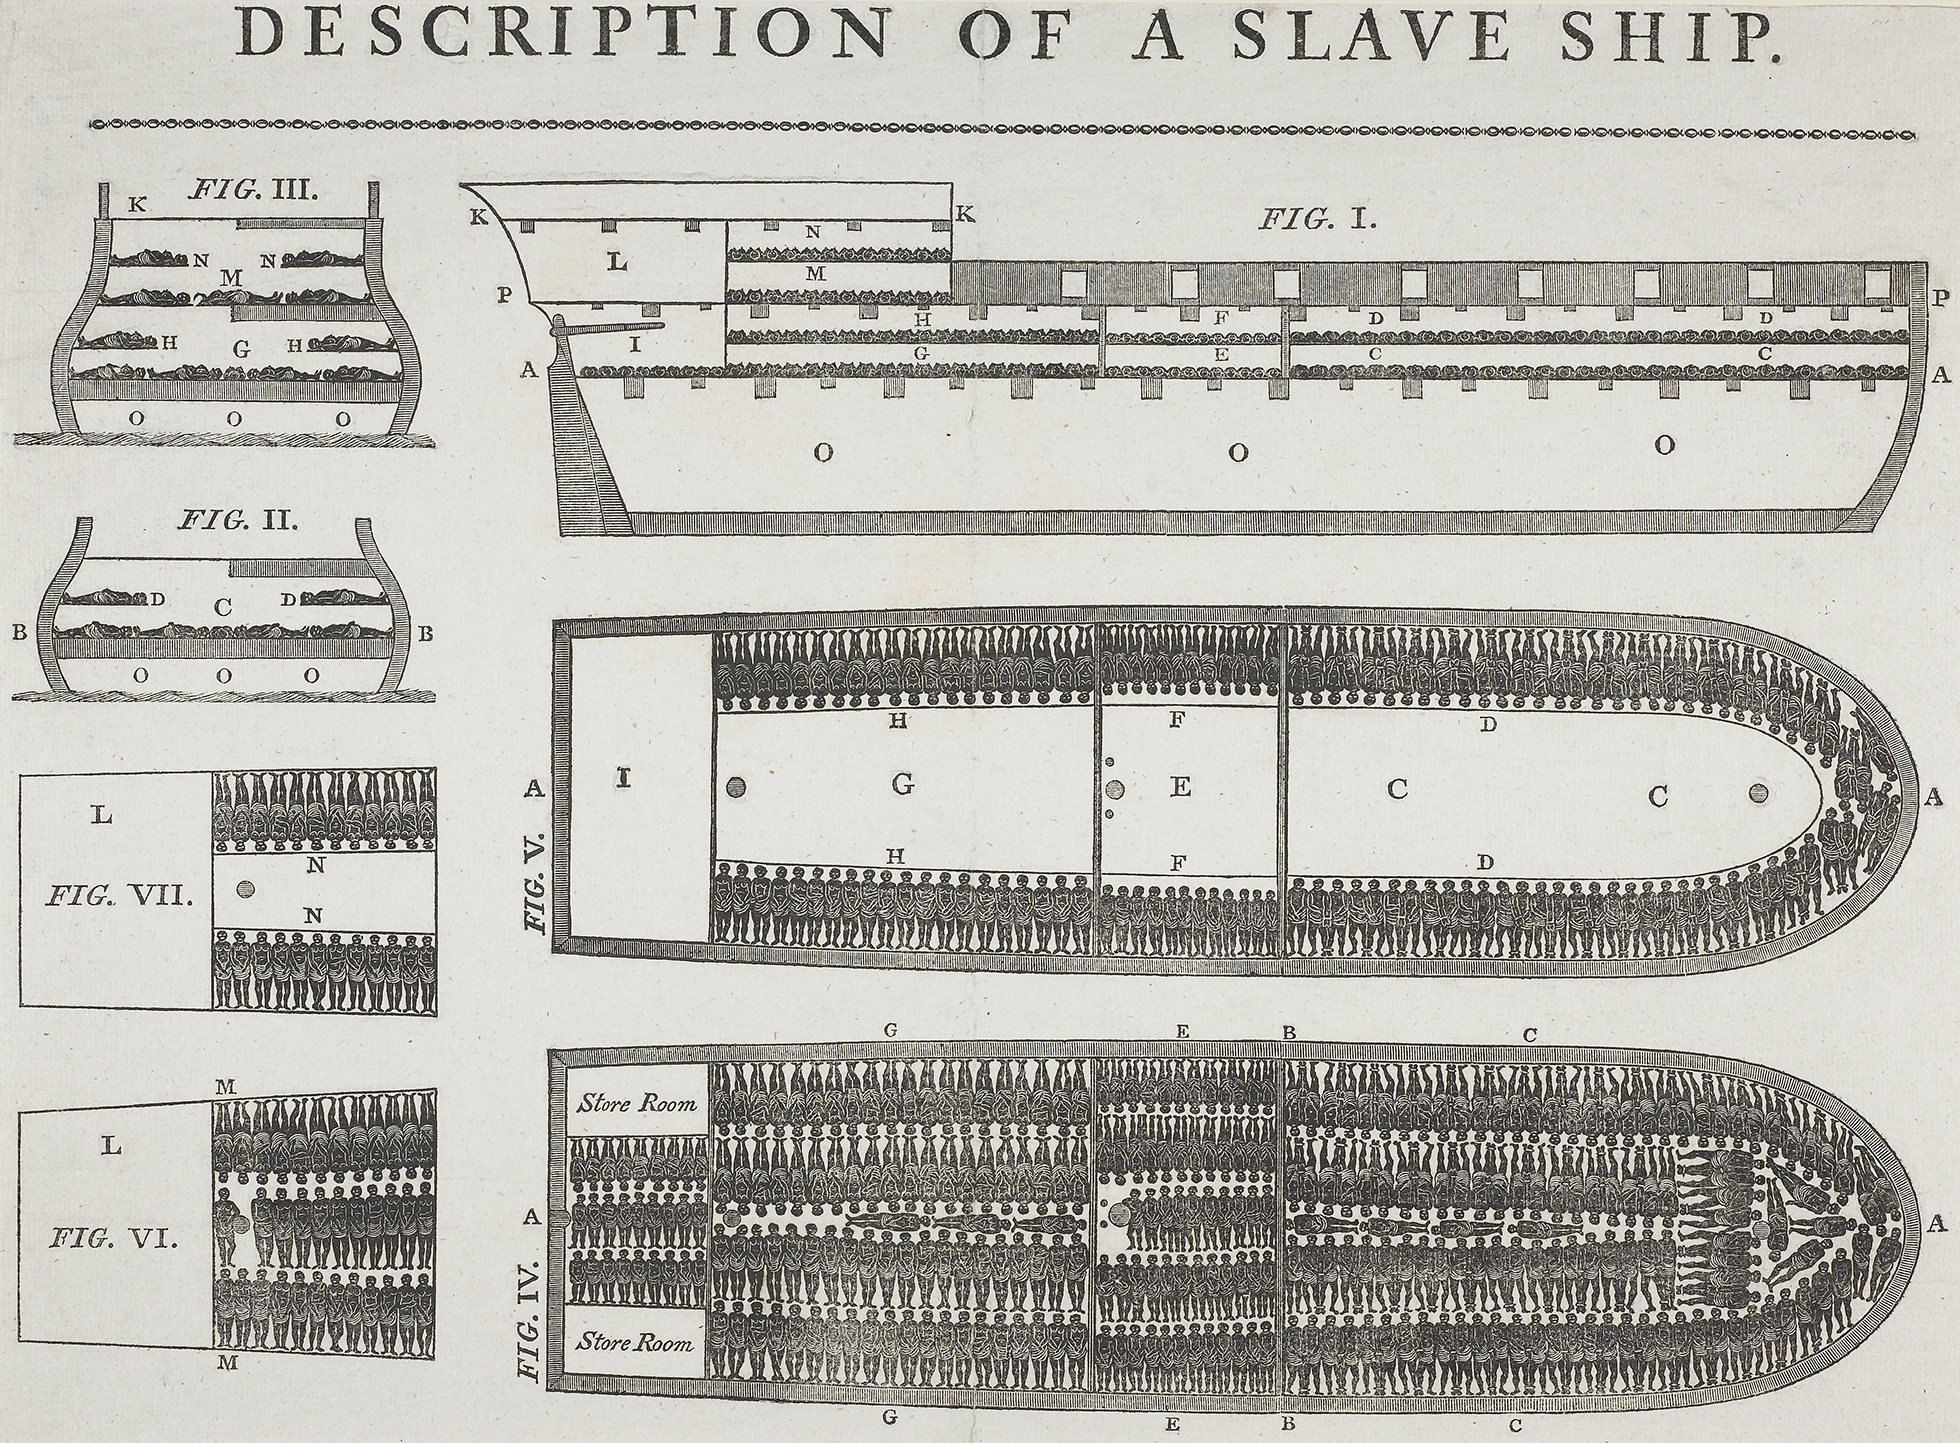 A black-and-white print showing diagrams and a description of a slave ship.